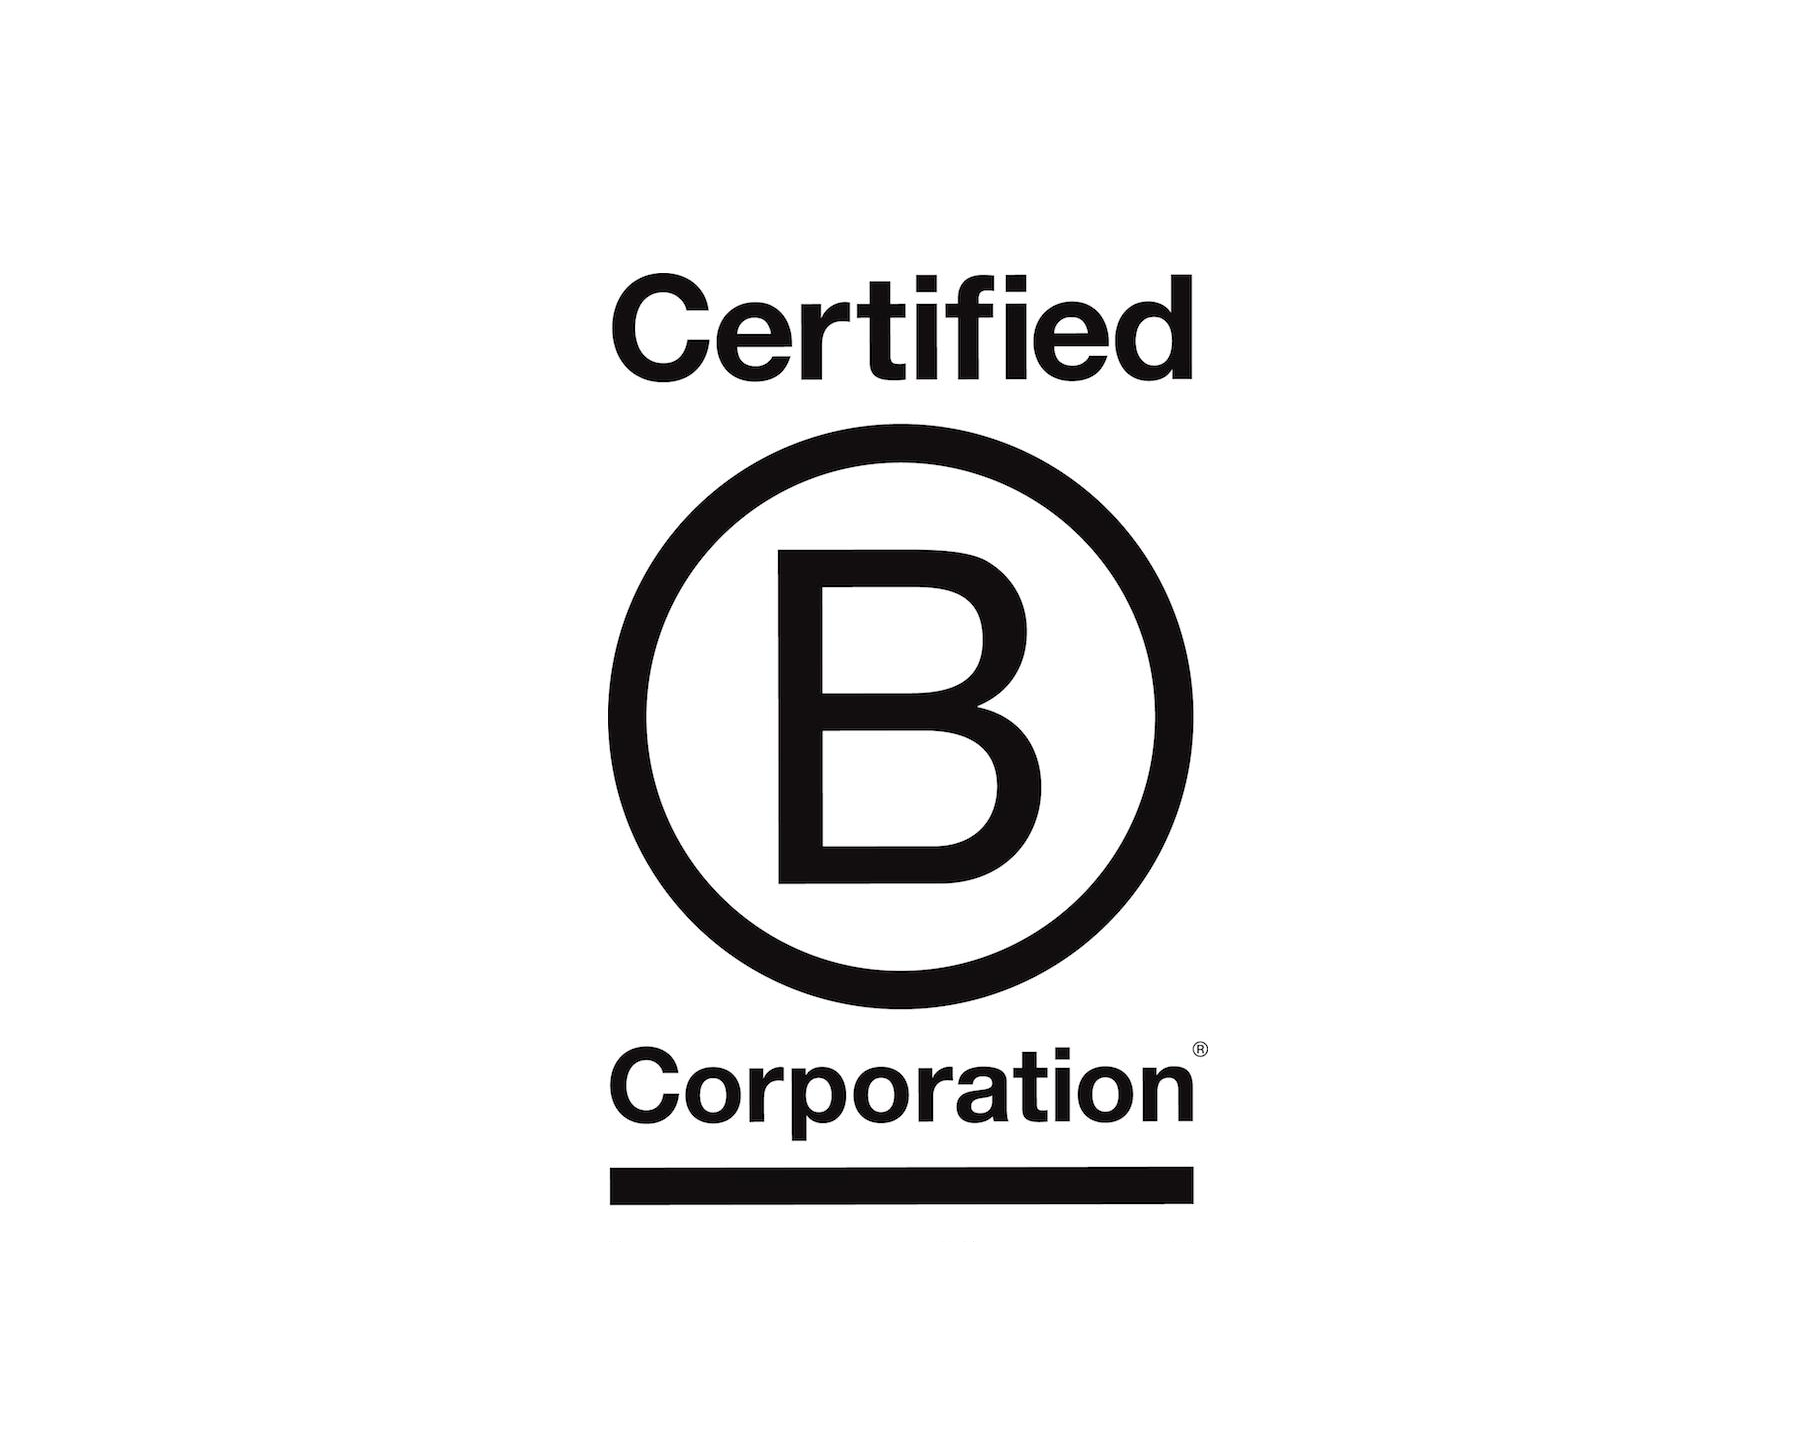 DAME B Corp Certification Stamp